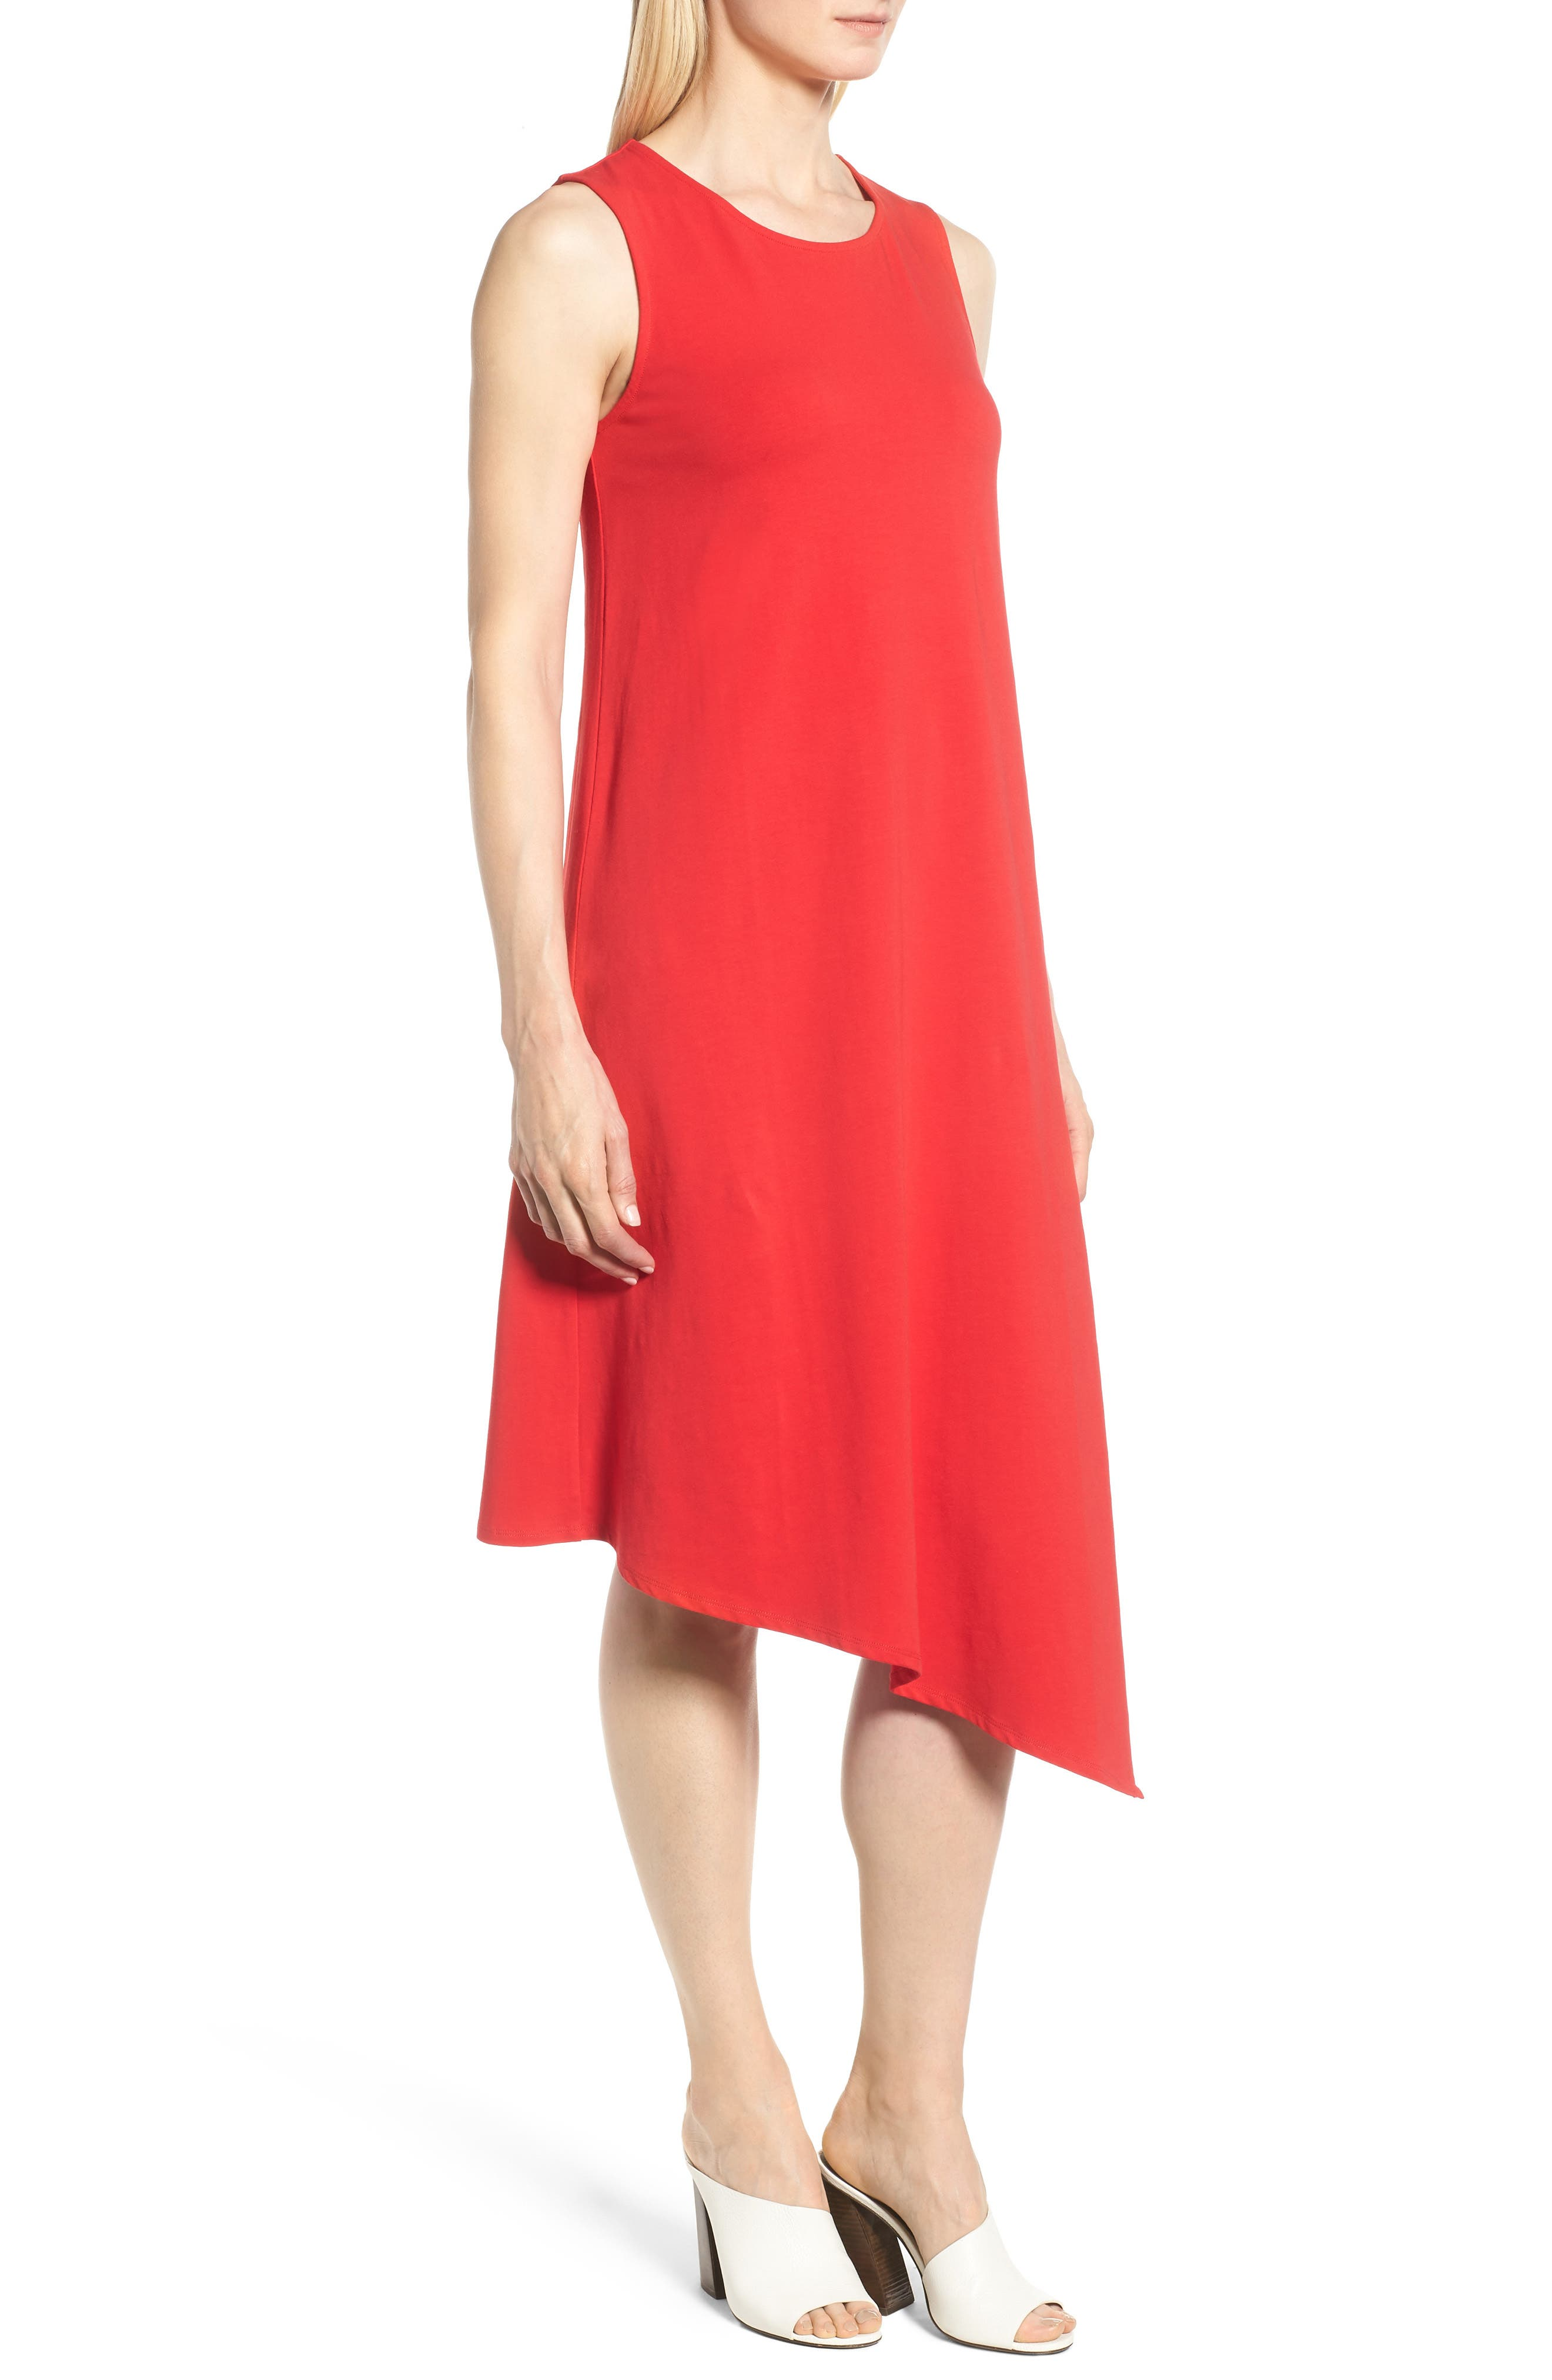 Sweet Escape Tank Dress,                             Alternate thumbnail 3, color,                             Red Sangria